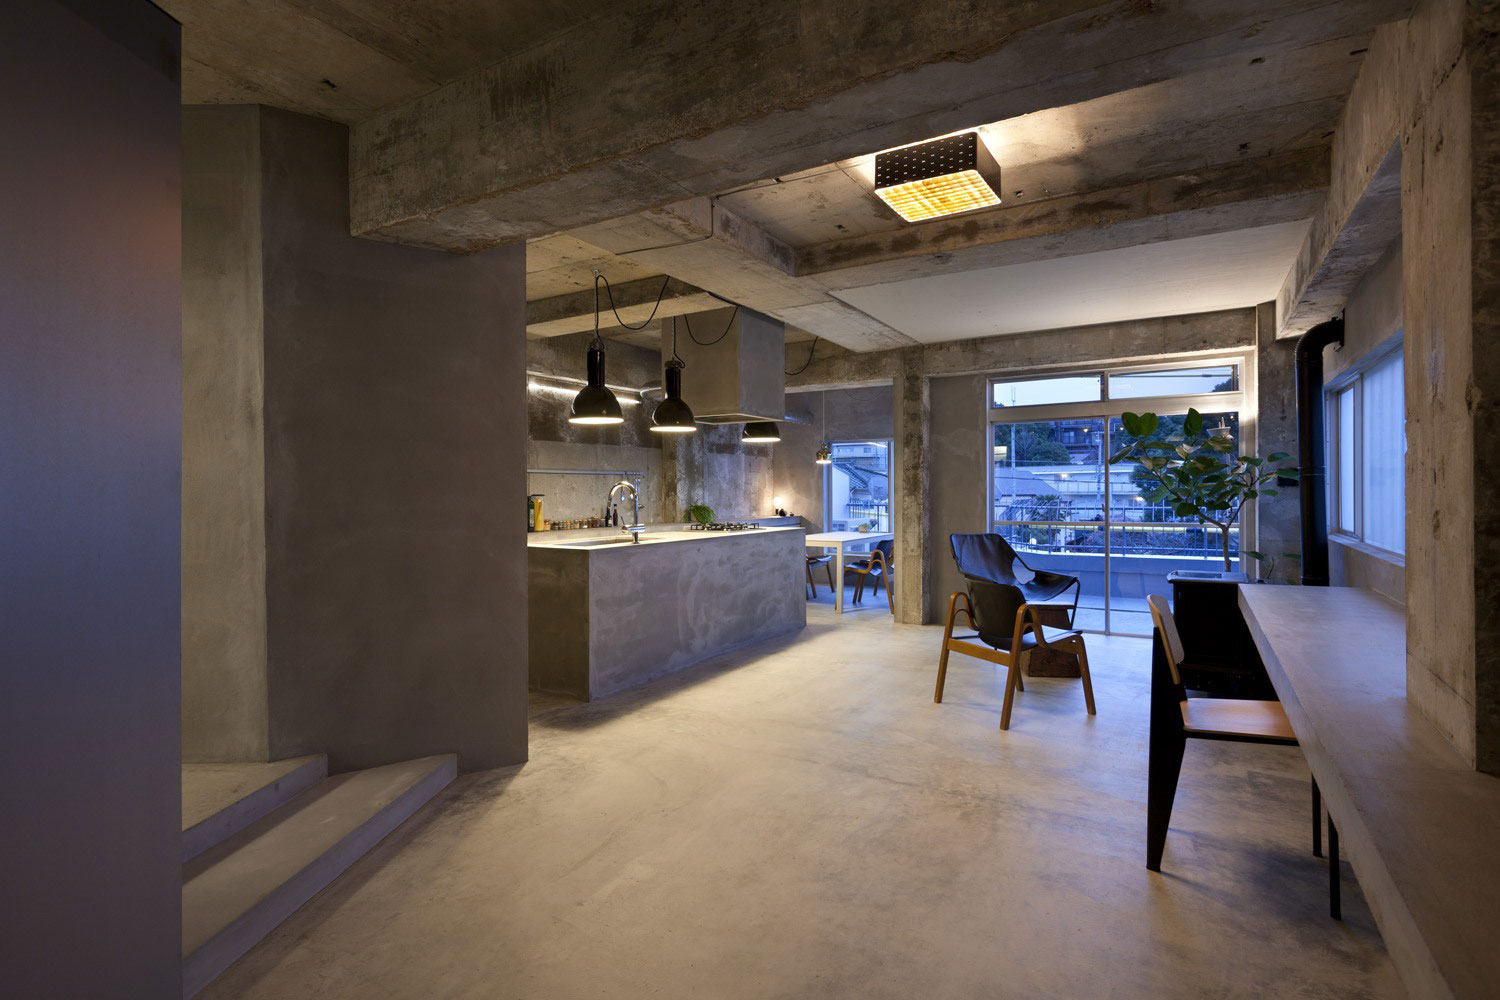 Concrete house with raw beauty and an eye for fashion for Concrete home design ideas